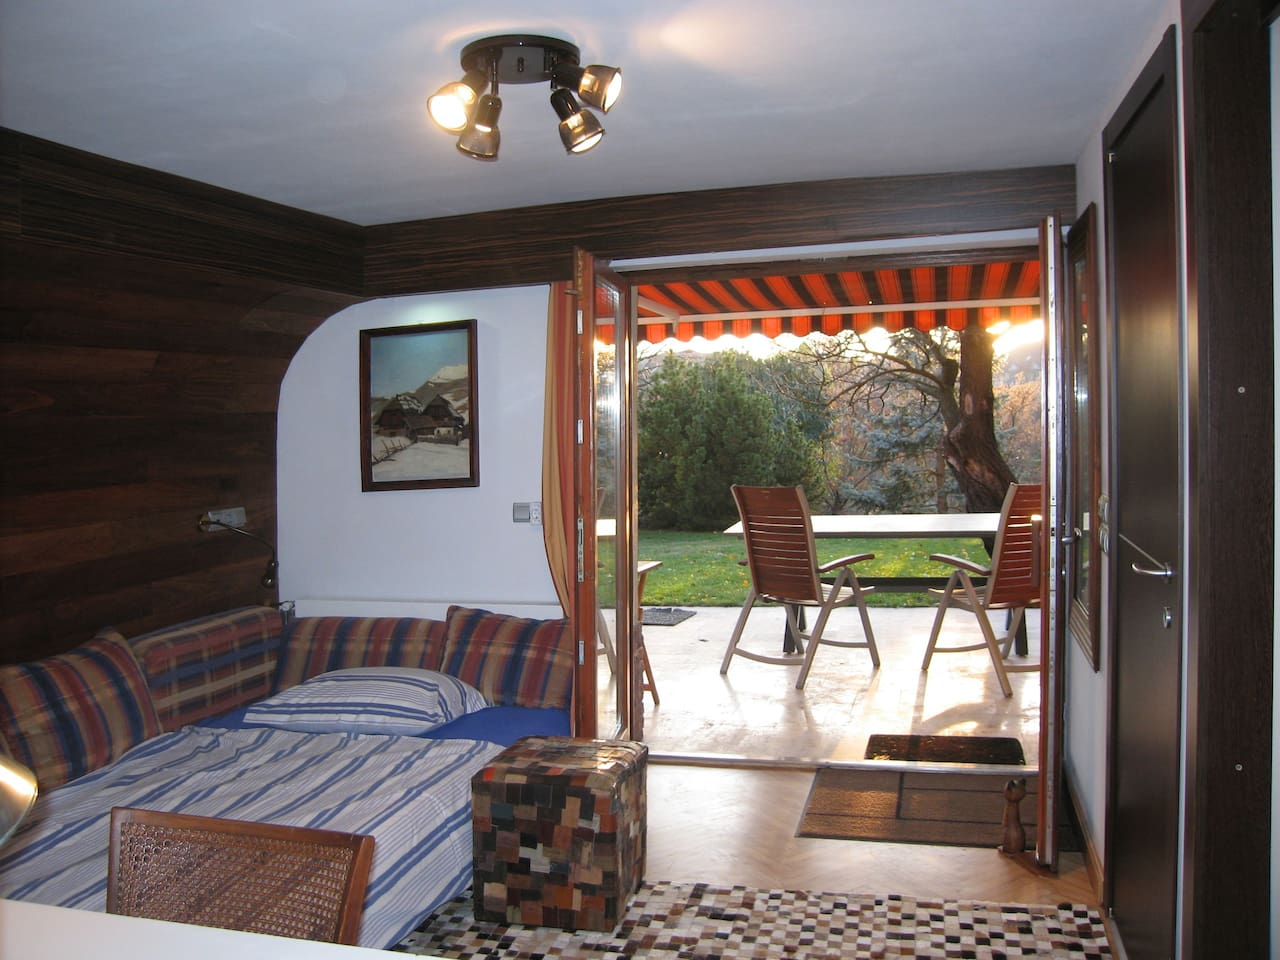 Room and terrace